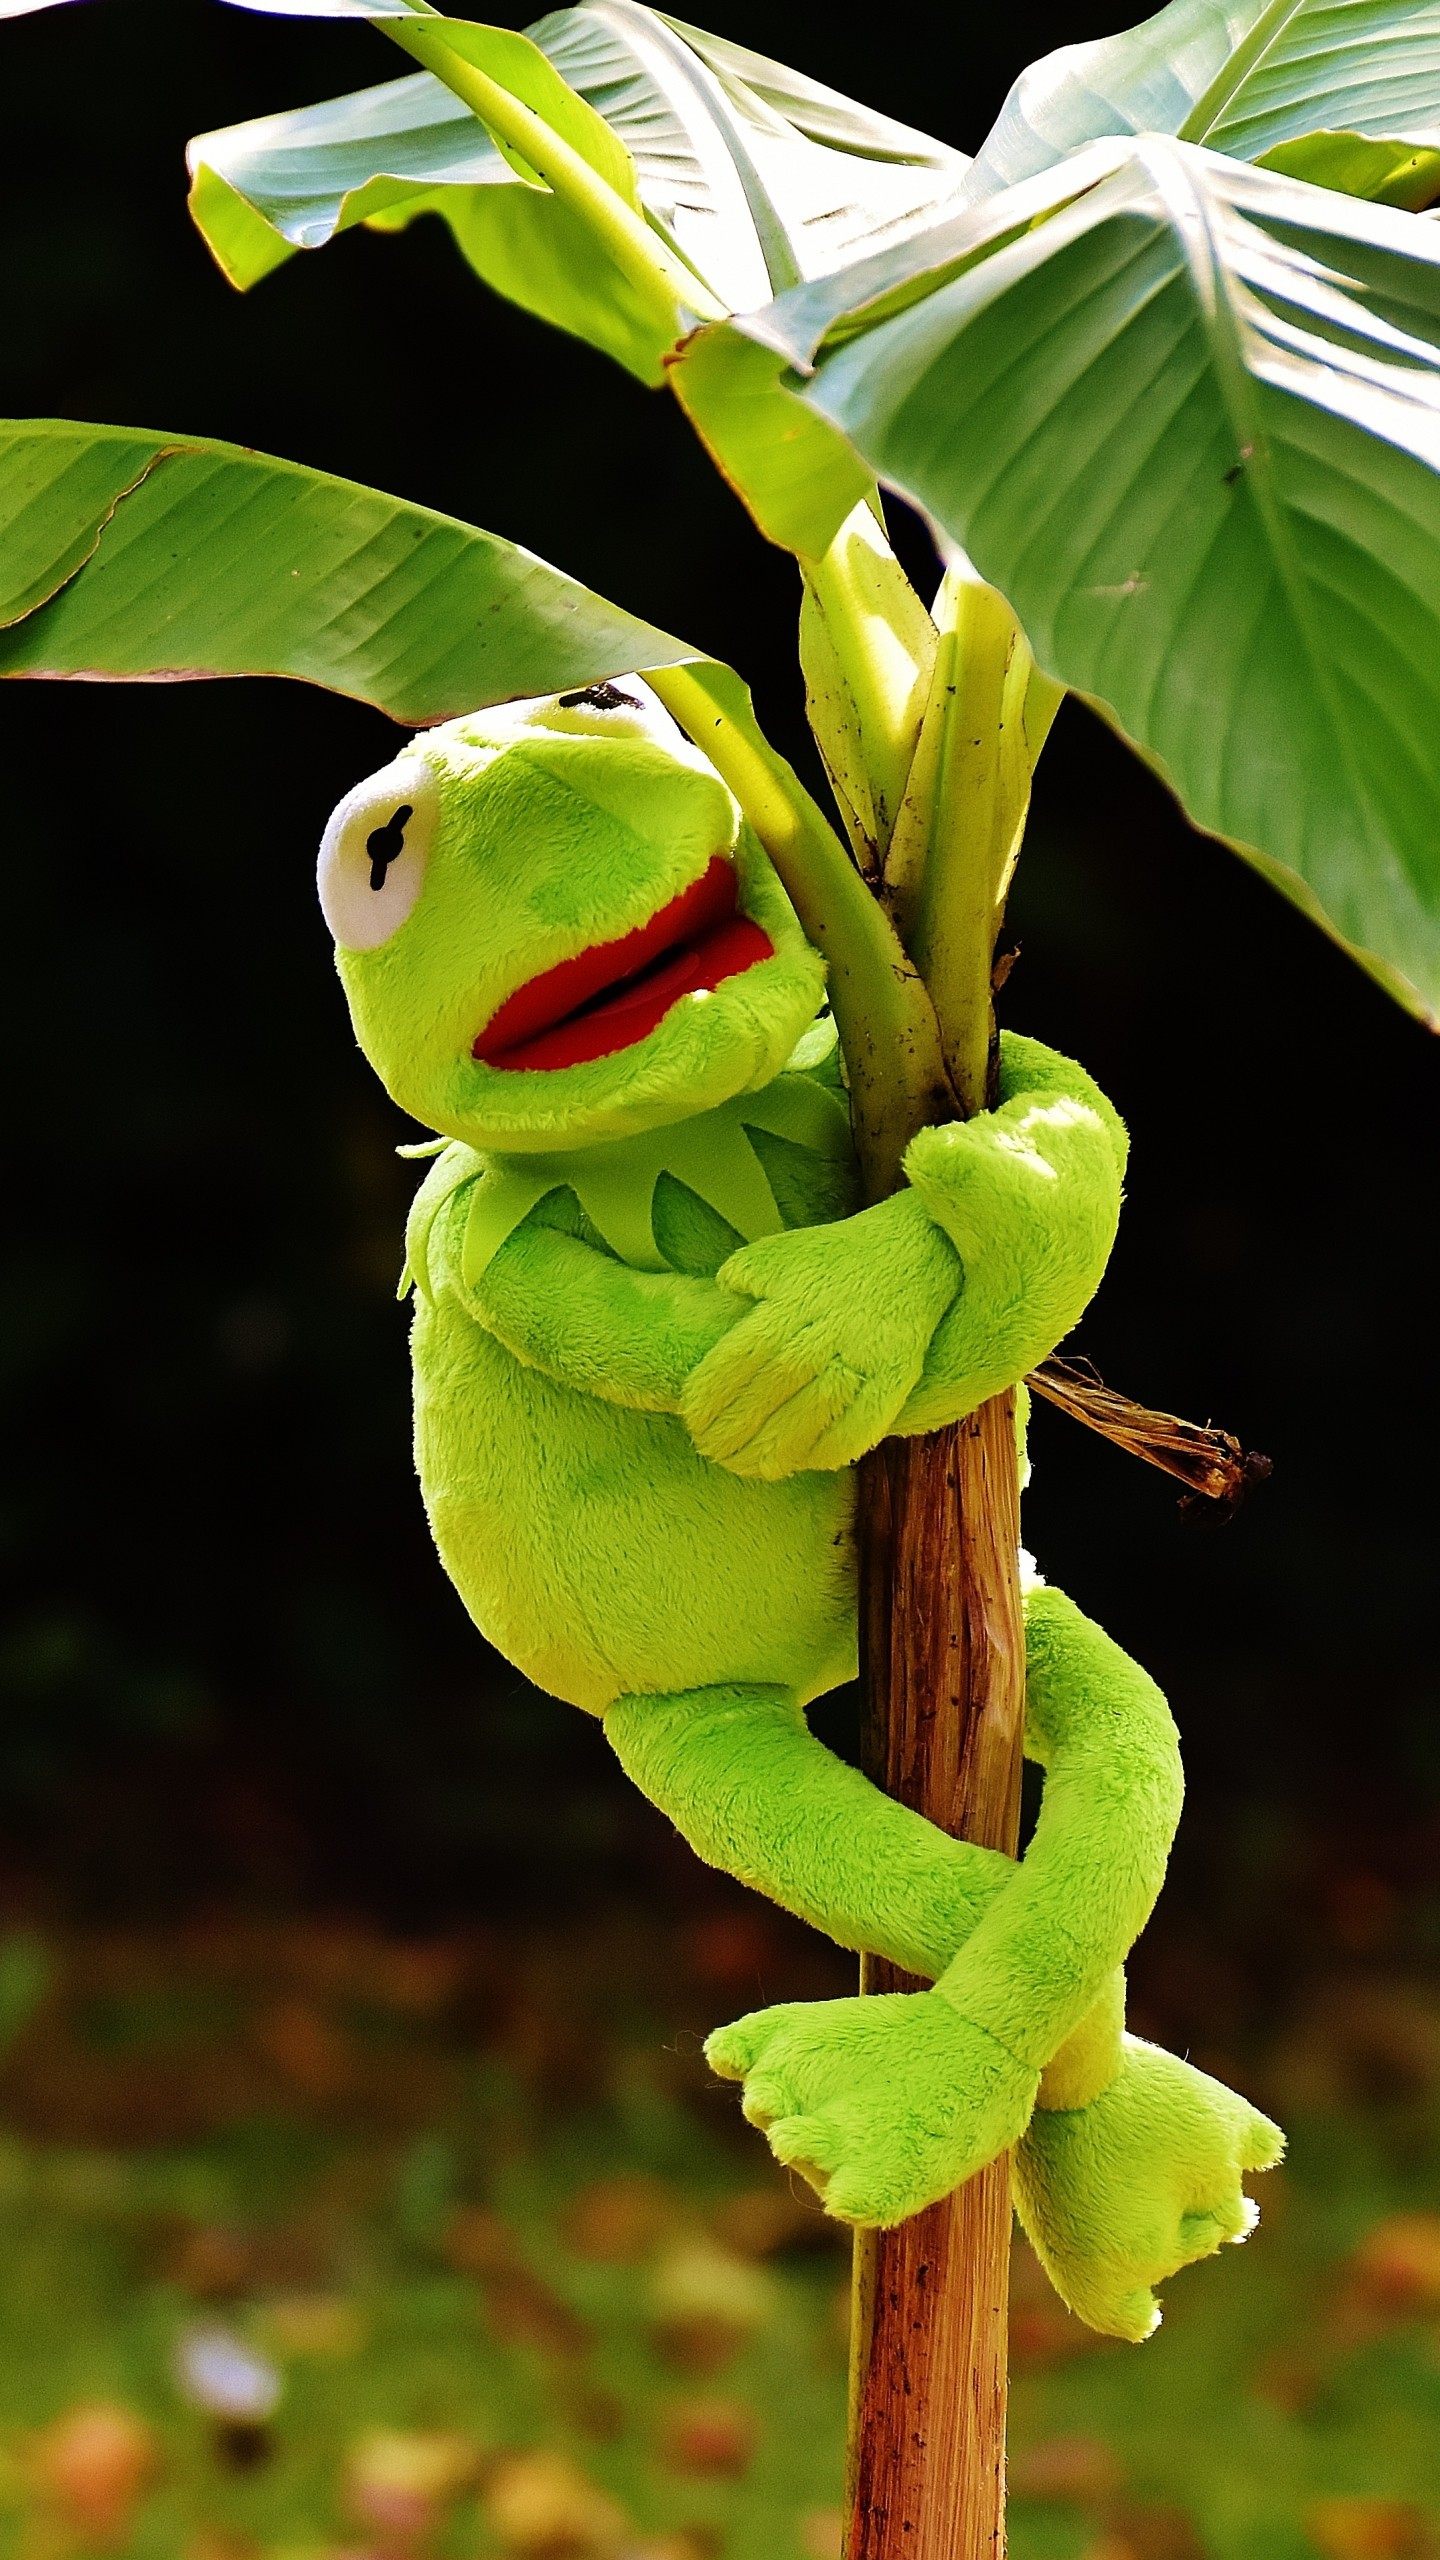 Wallpaper toy, kermit the frog, plant